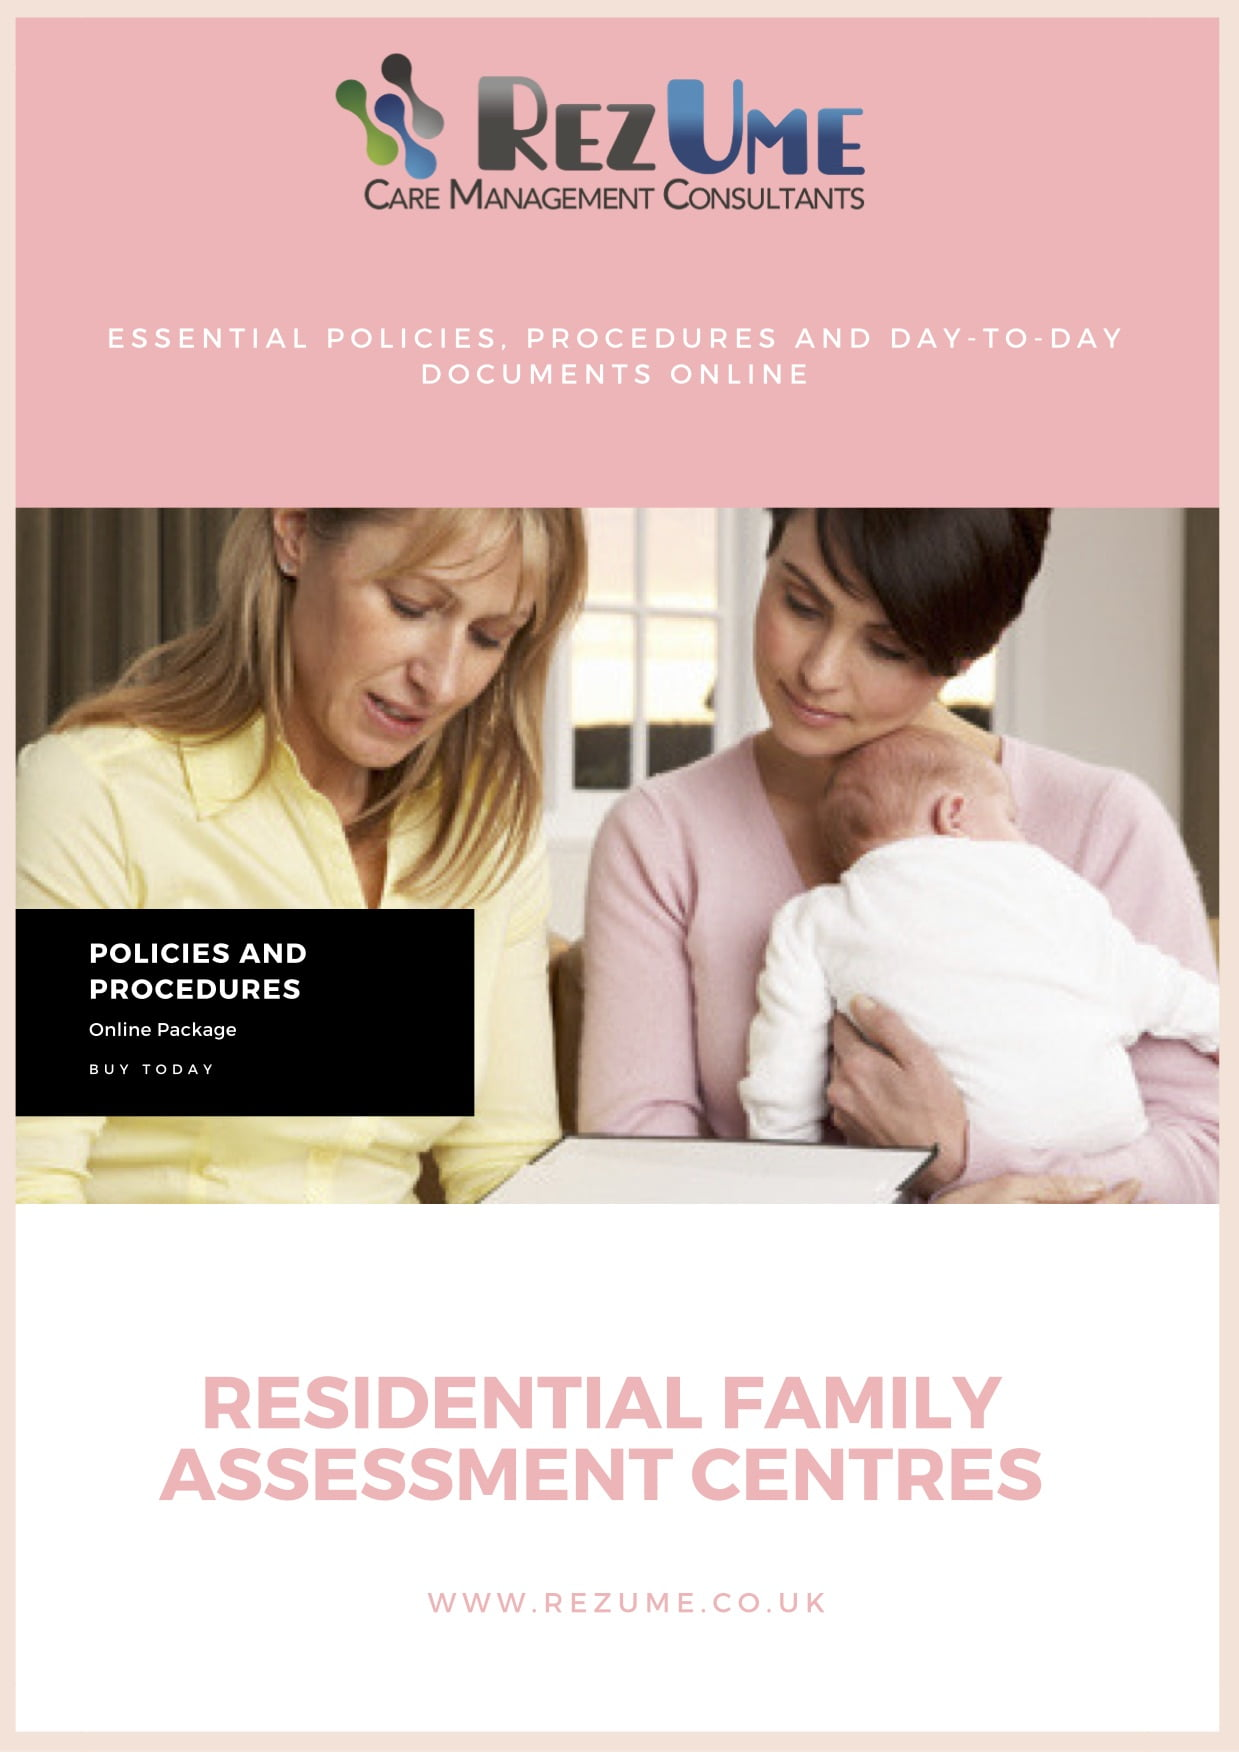 Residential Family Assessment Centres Policies and Procedures